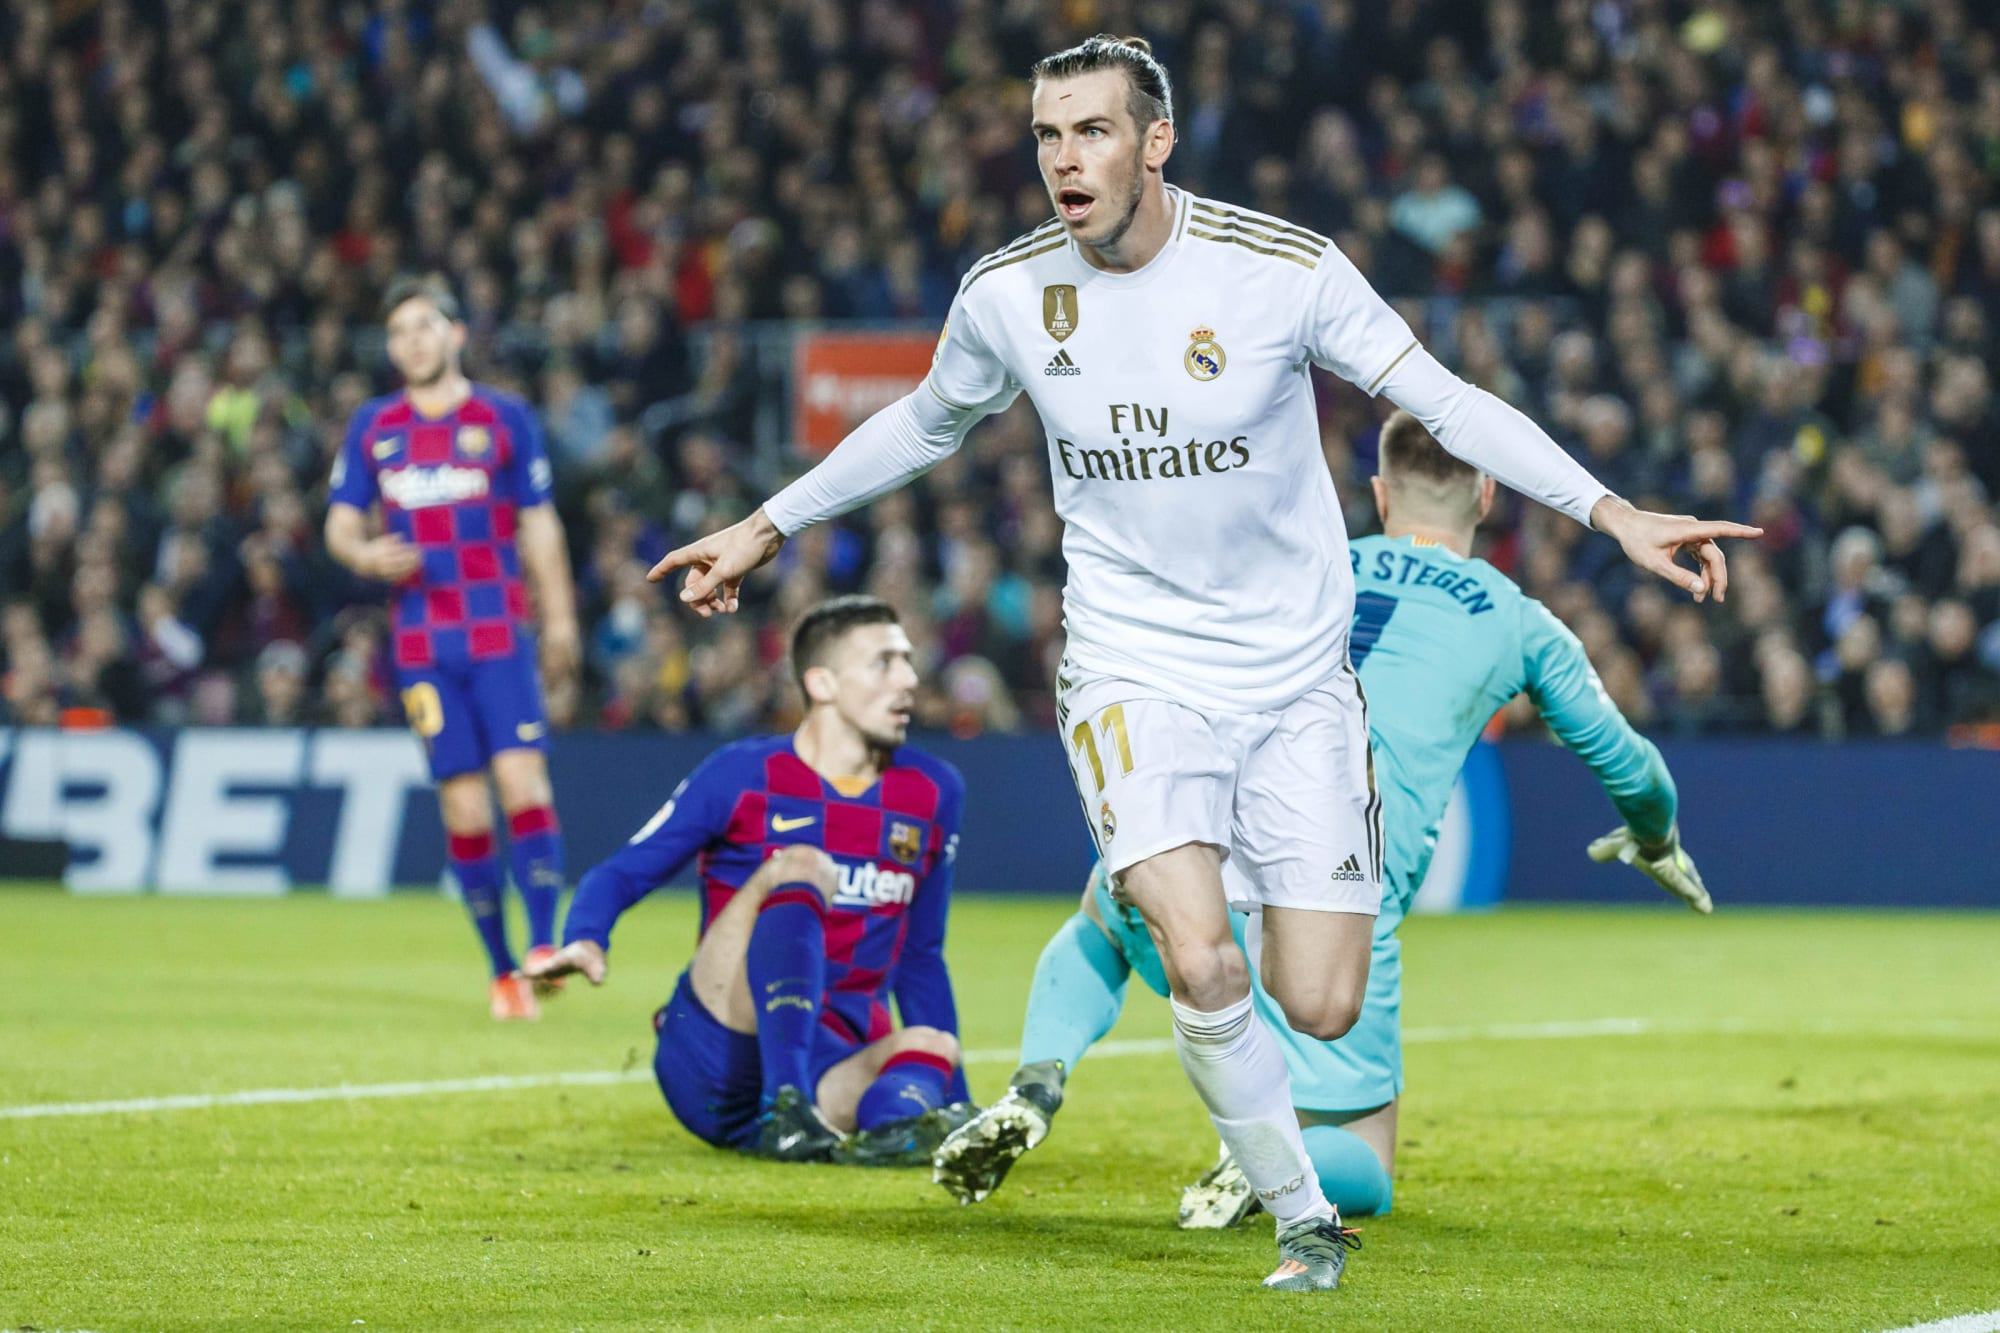 Real Madrid: Gareth Bale has one last chance to prove his class